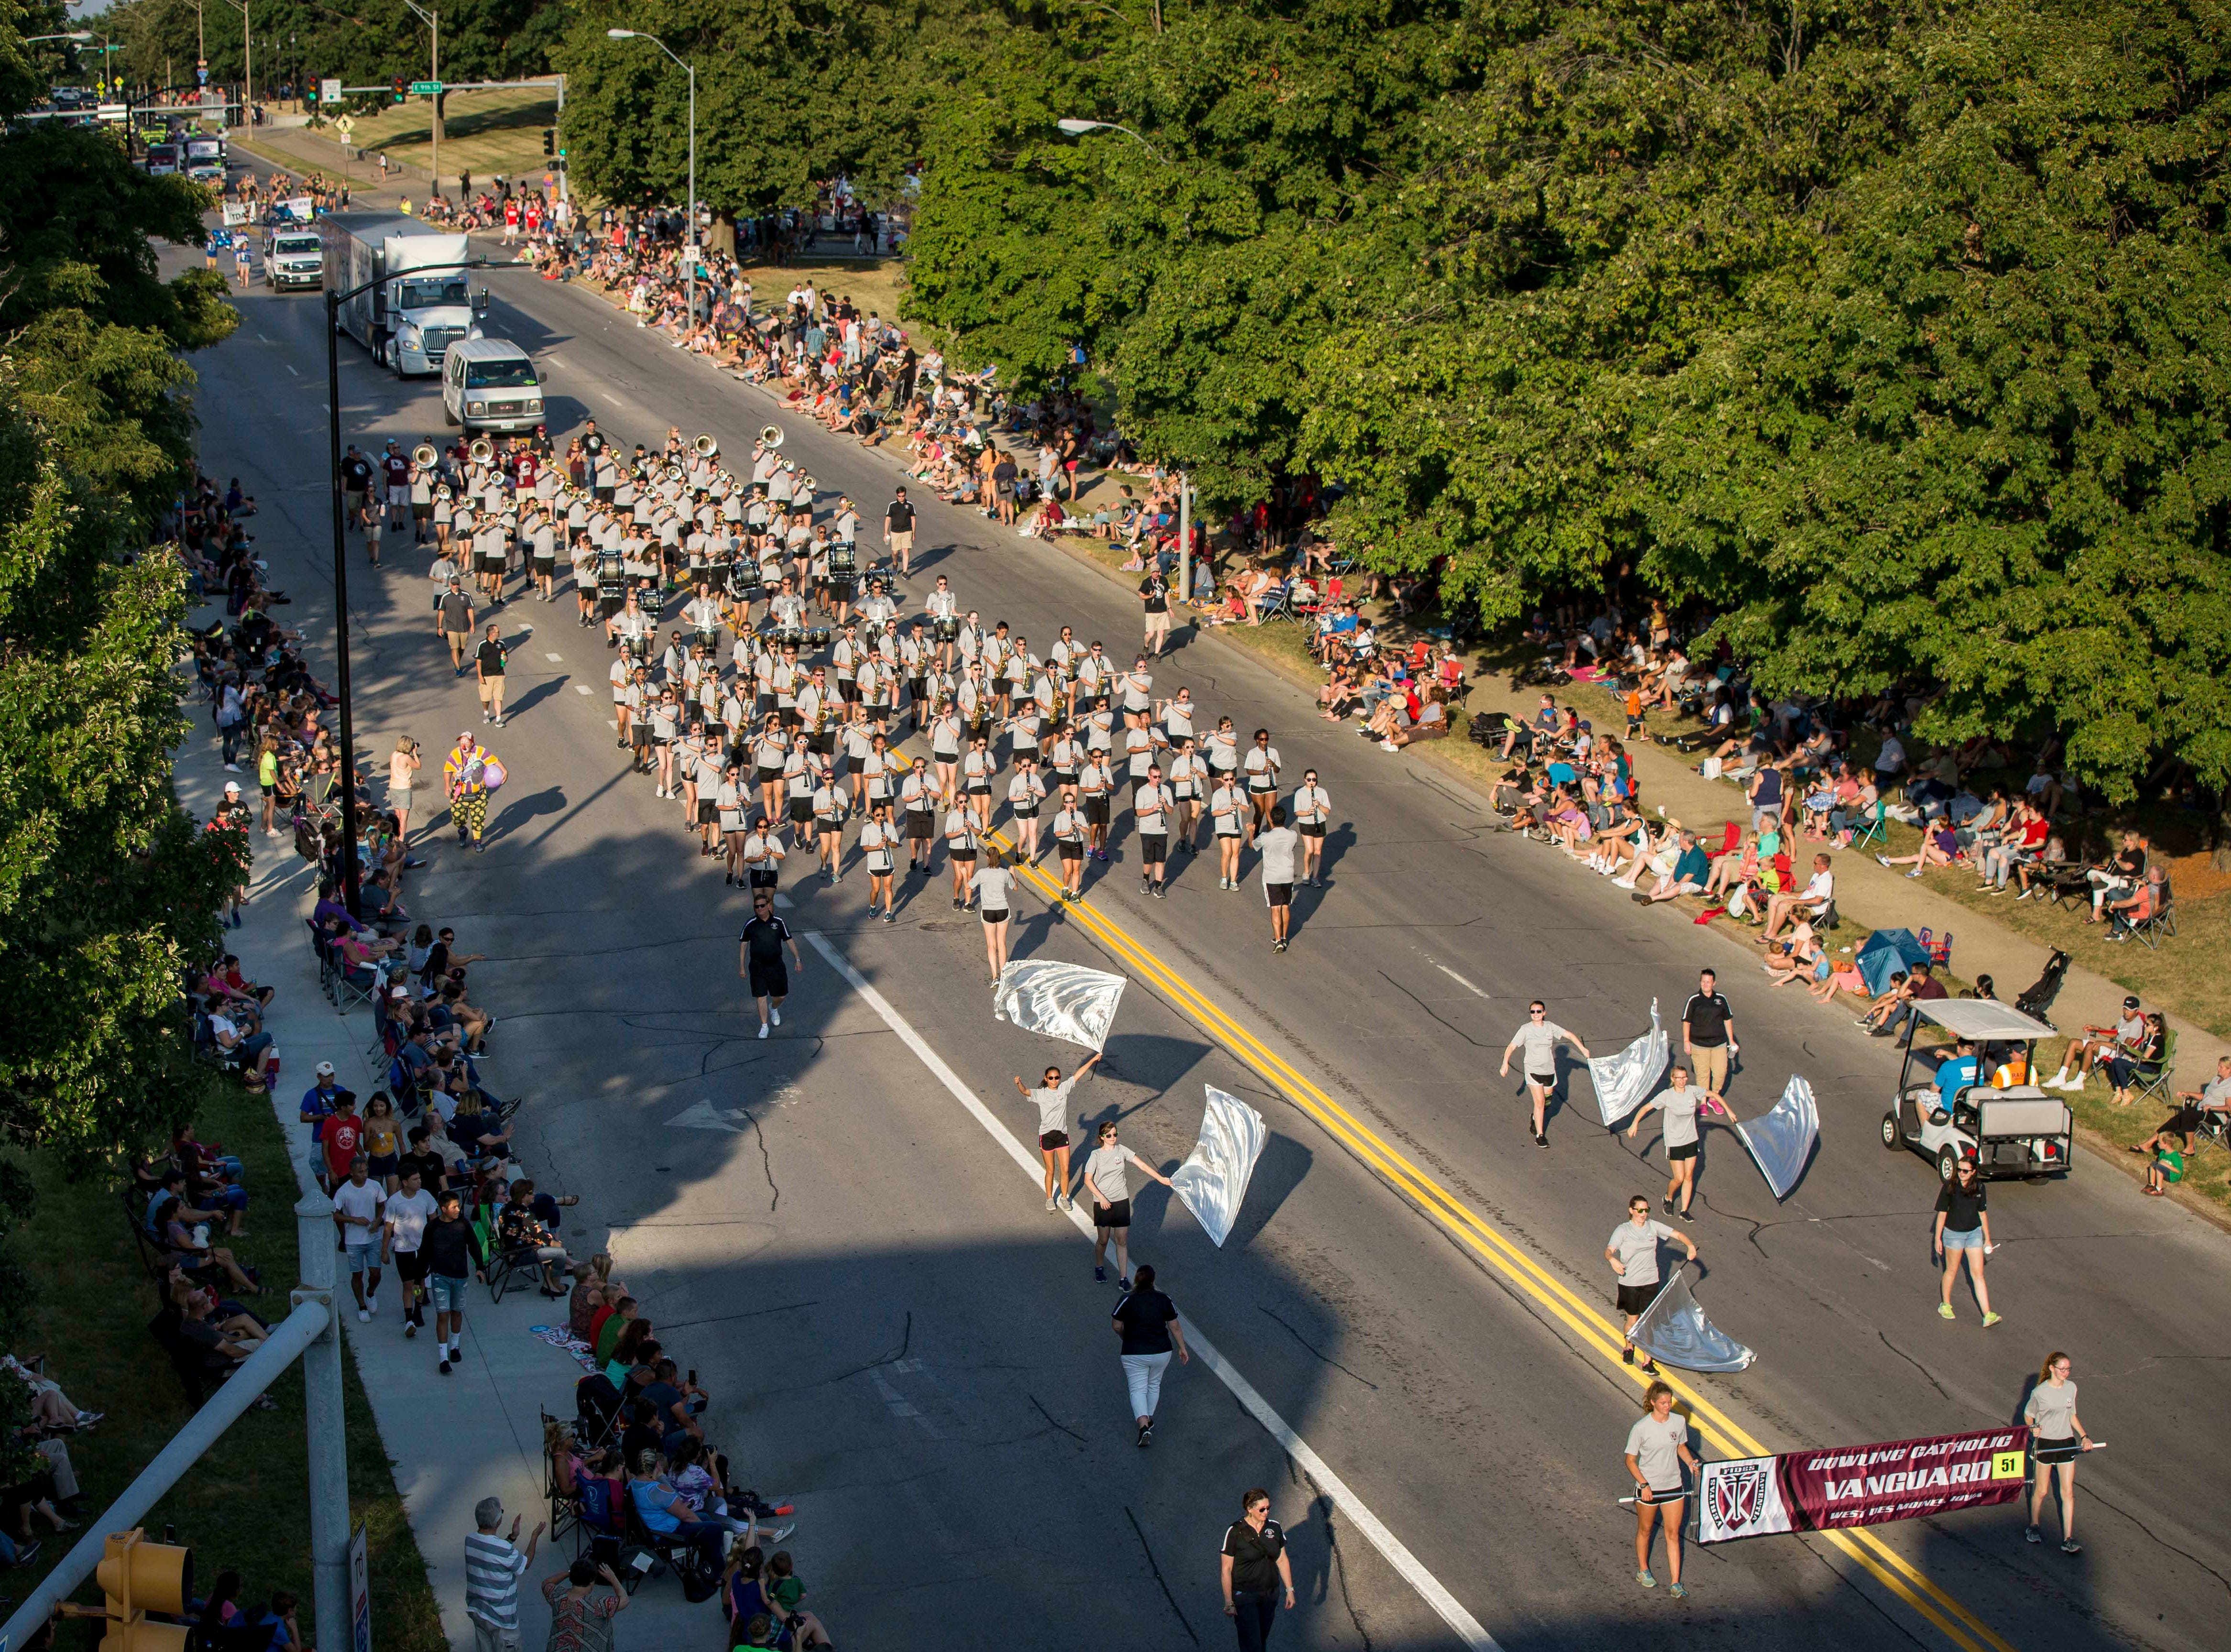 Dowling Catholic Vanguard marching band moves along the 2018 Iowa State Fair parade from the Statehouse to downtown Des Moines Wednesday, Aug. 8, 2018. The Iowa State Fair runs from Aug. 9Ð19.